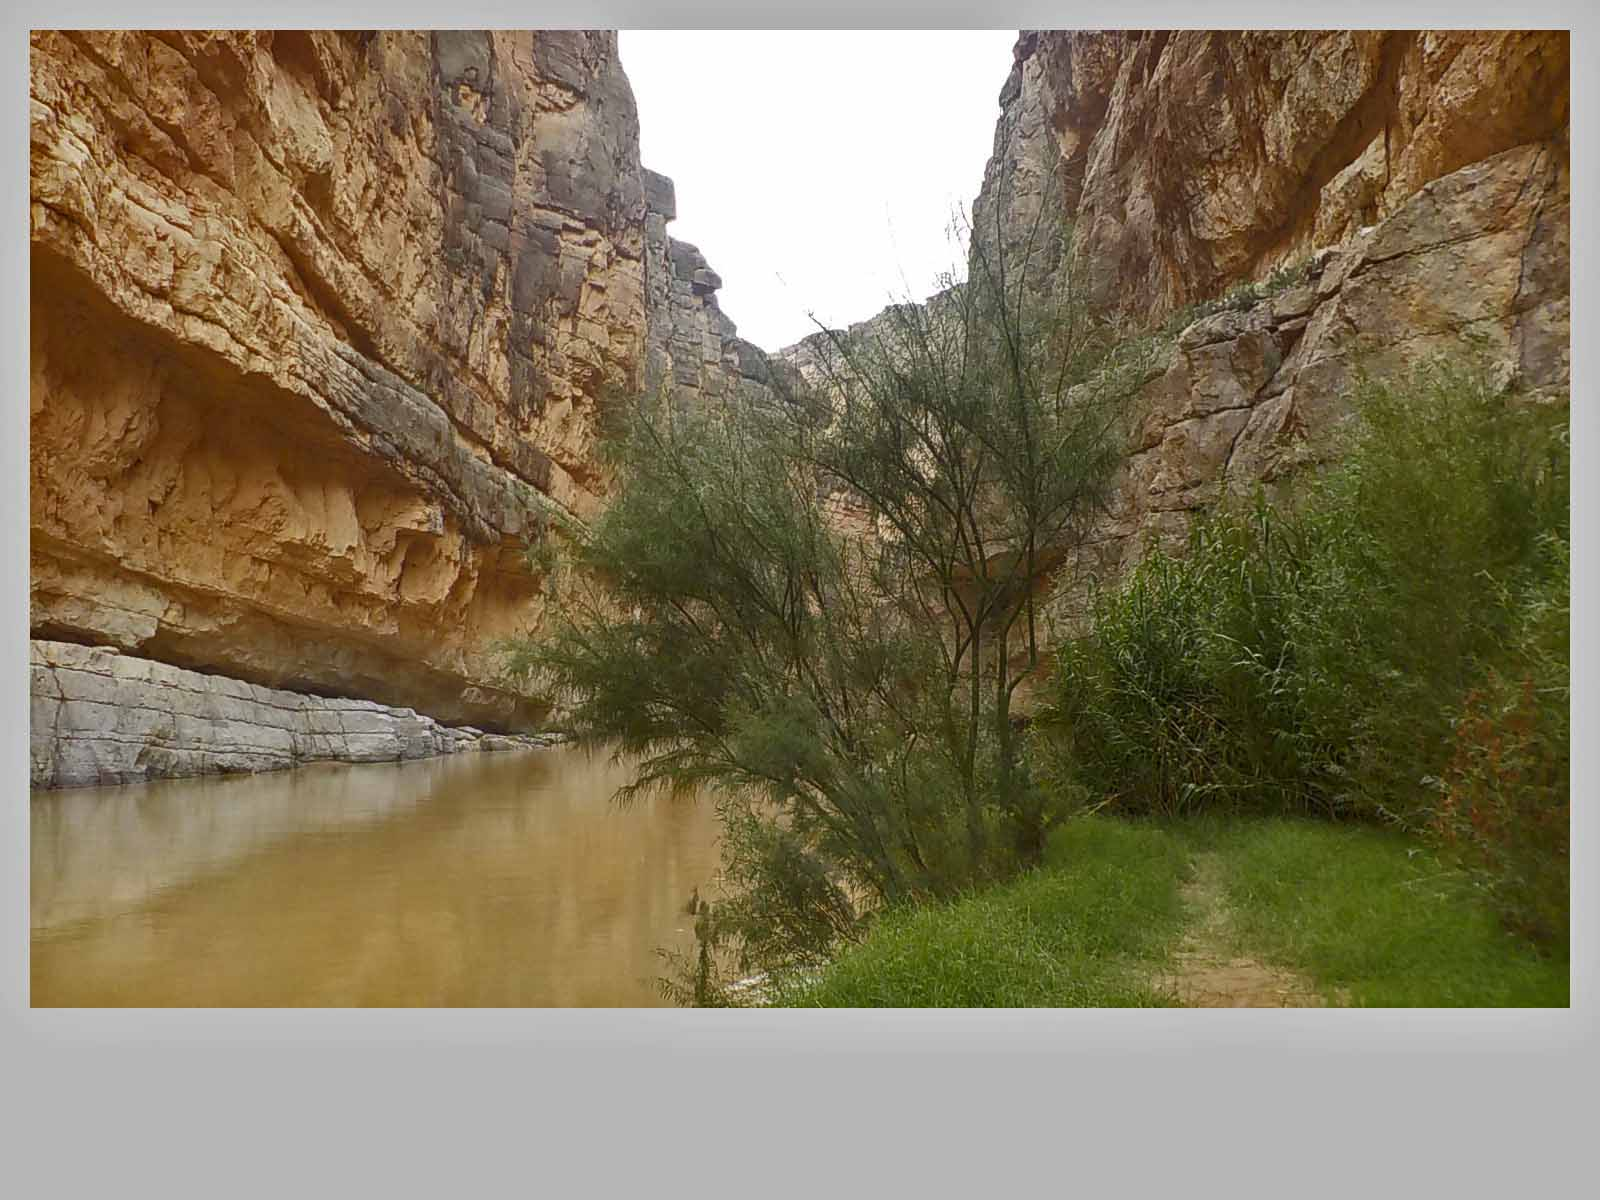 The muddy Rio Grande along the Santa Elena Canyon Trail.